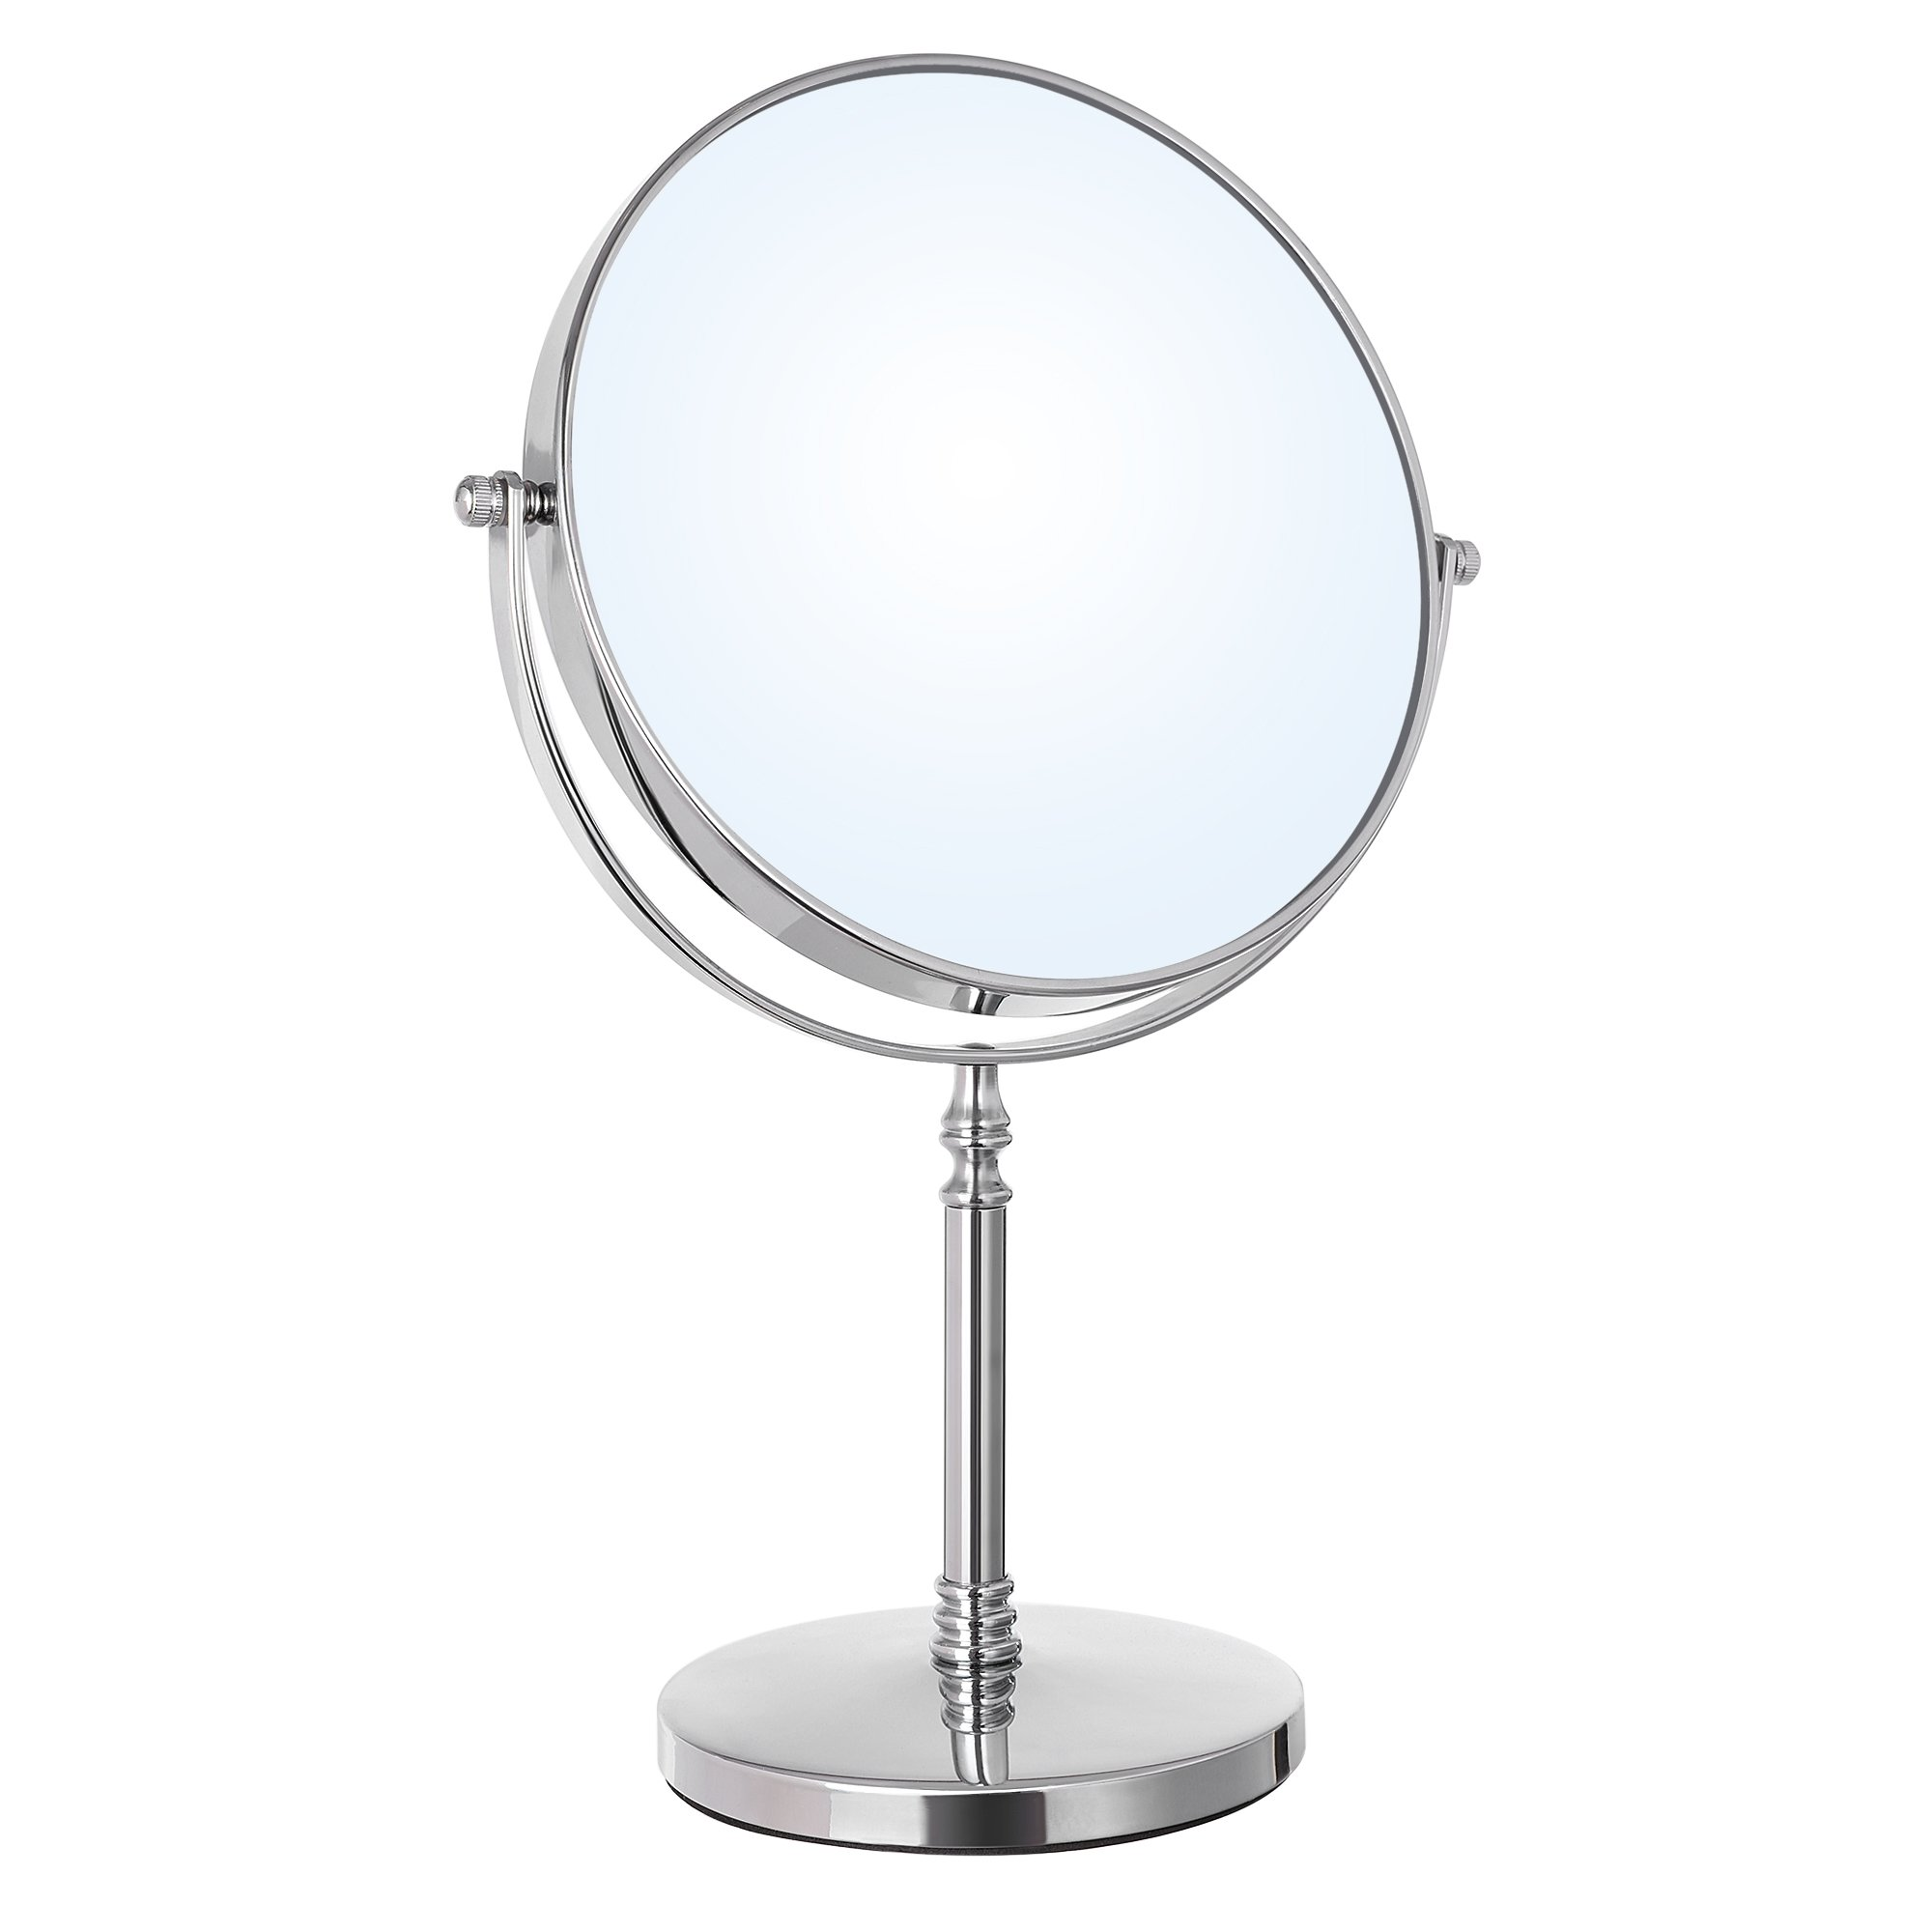 SONGMICS 8-Inch LARGE Tabletop Vanity Makeup Mirror Two-sided 7x Magnifying Swivel Cosmetic Mirror, 14-inch Height Chrome UBBM07S by SONGMICS